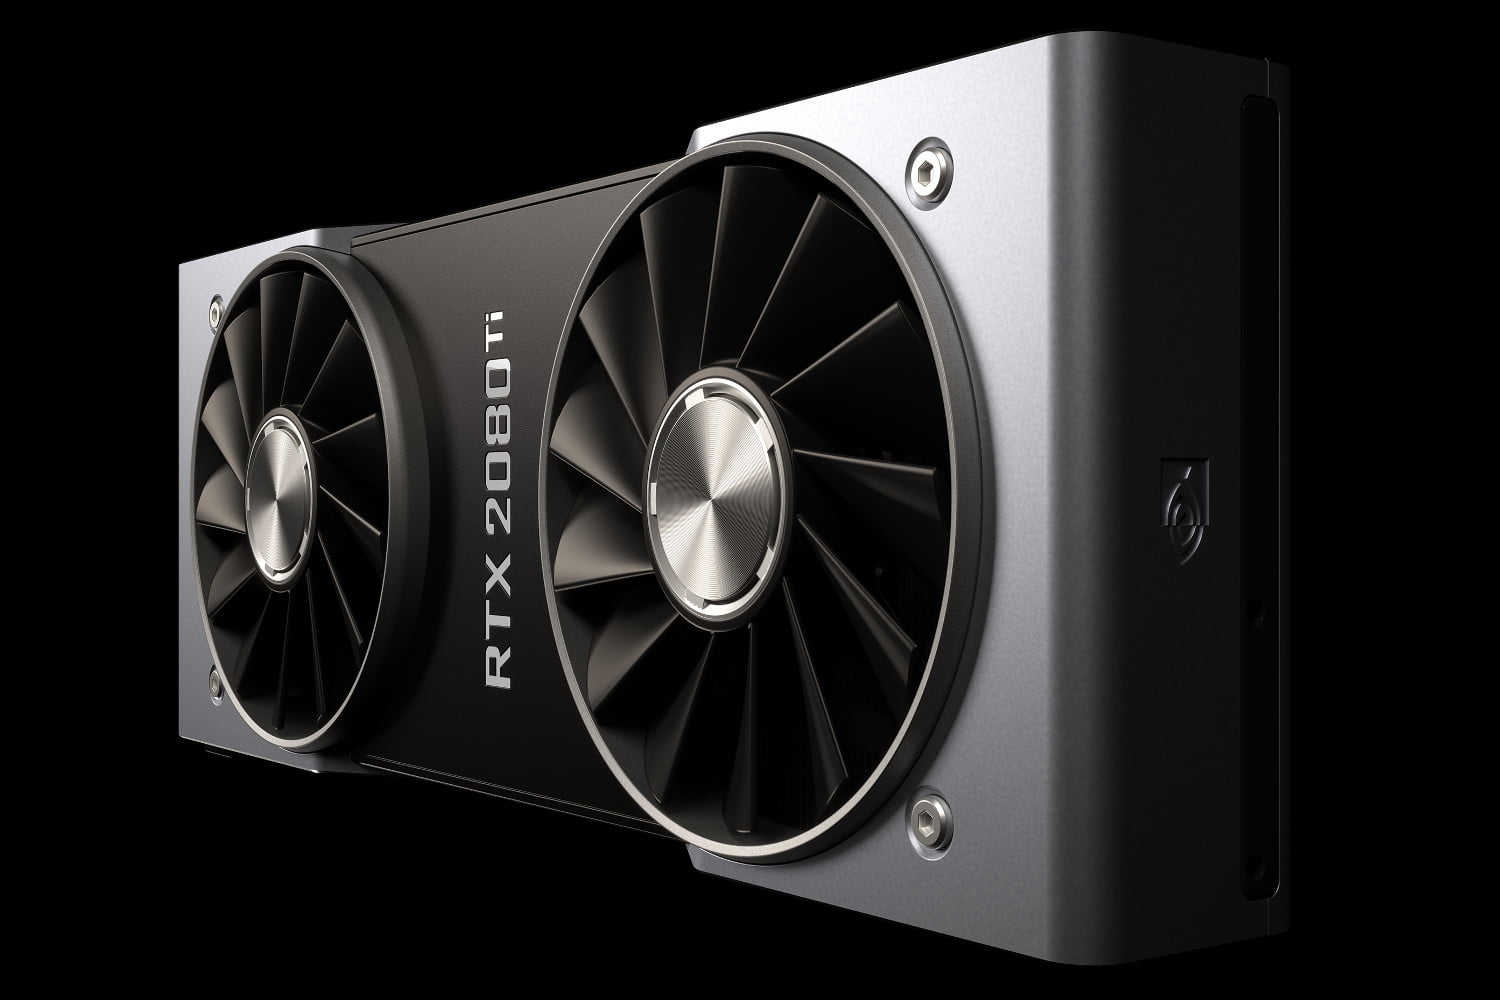 Nvidia Scanner Overclocks RTX 2000 Cards in Just One Click